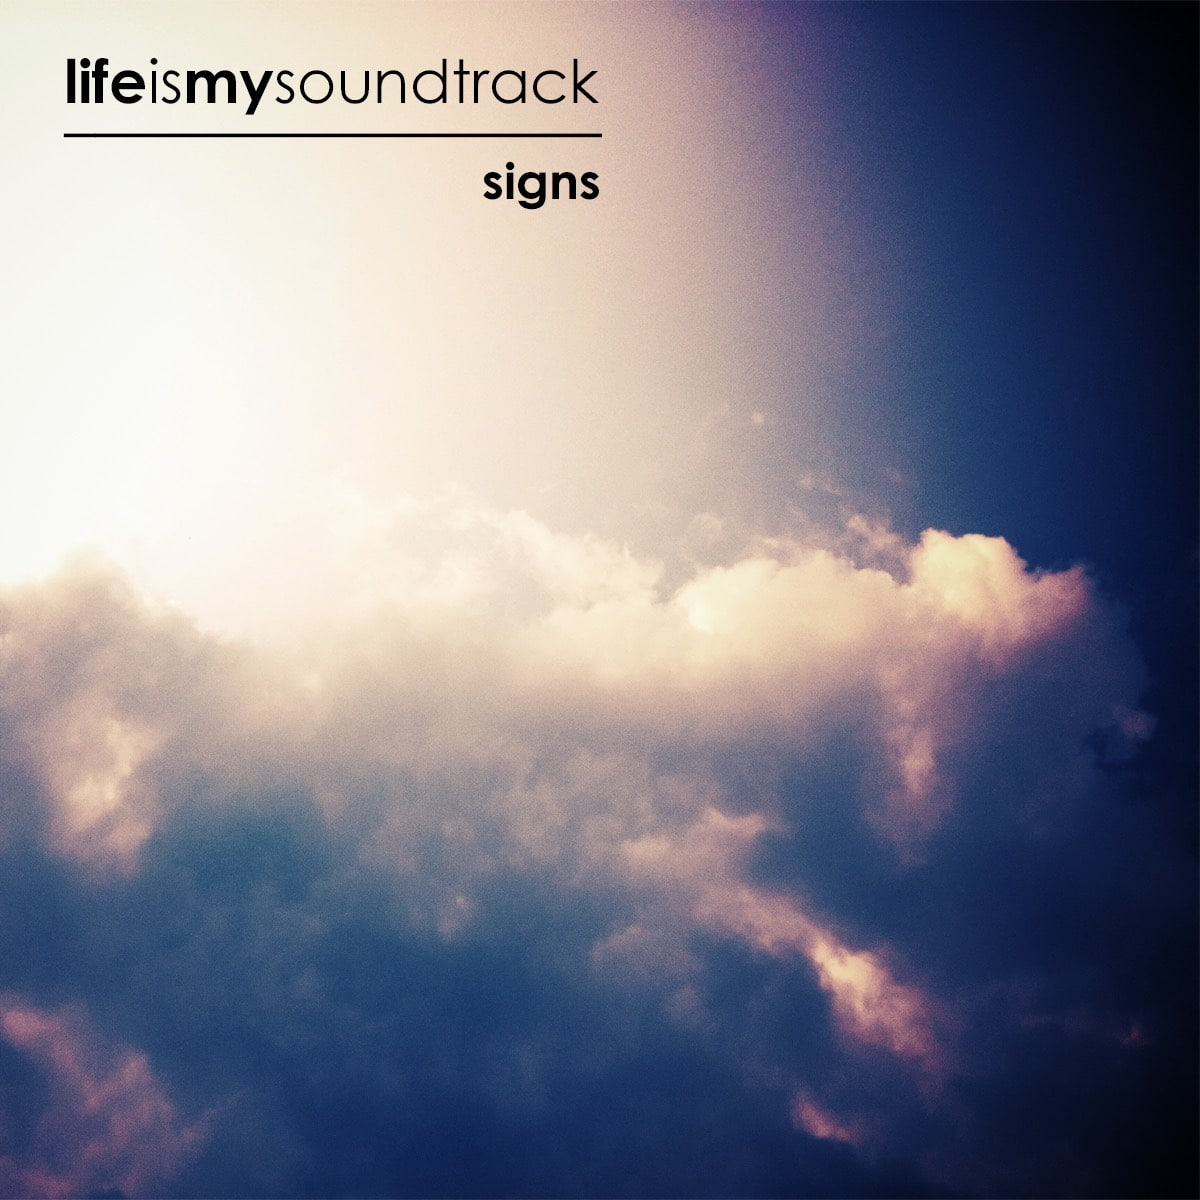 The album Signs by Life Is My Soundtrack - Musical vibrations that hint of things to come